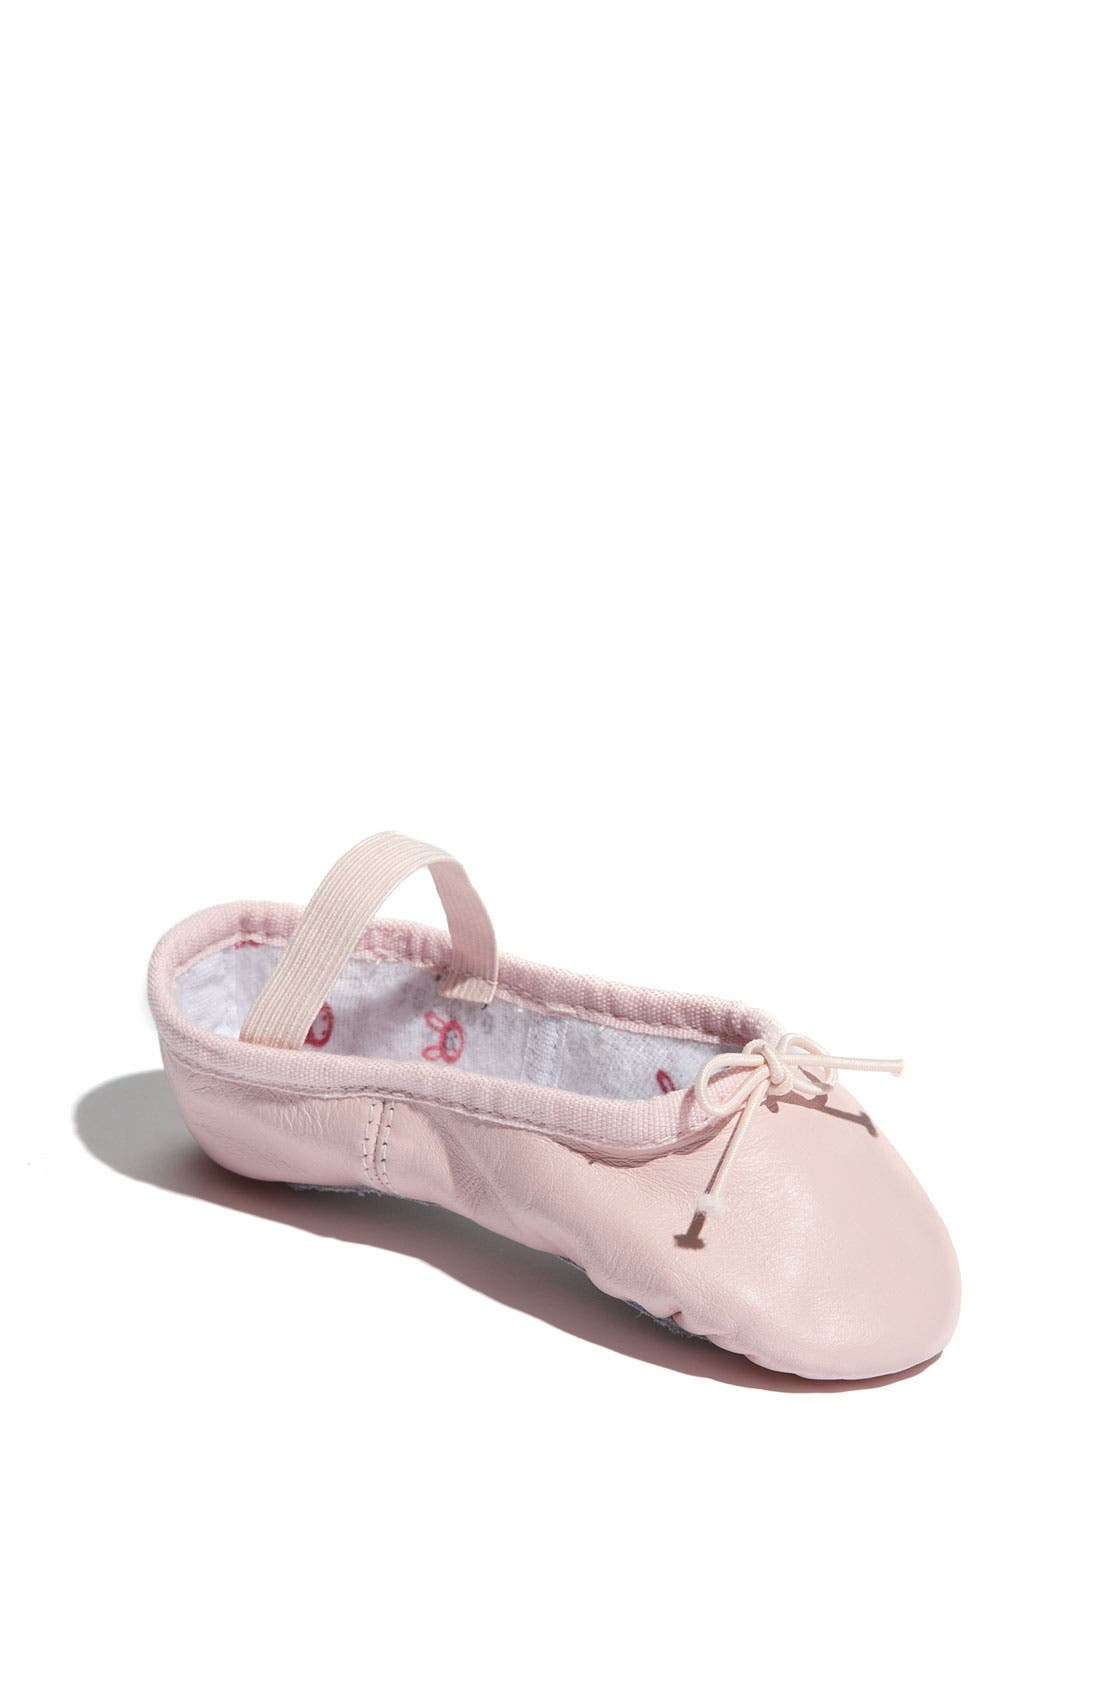 Main Image - Bloch 'Bunnyhop' Ballet Flat (Walker, Toddler & Little Kid)